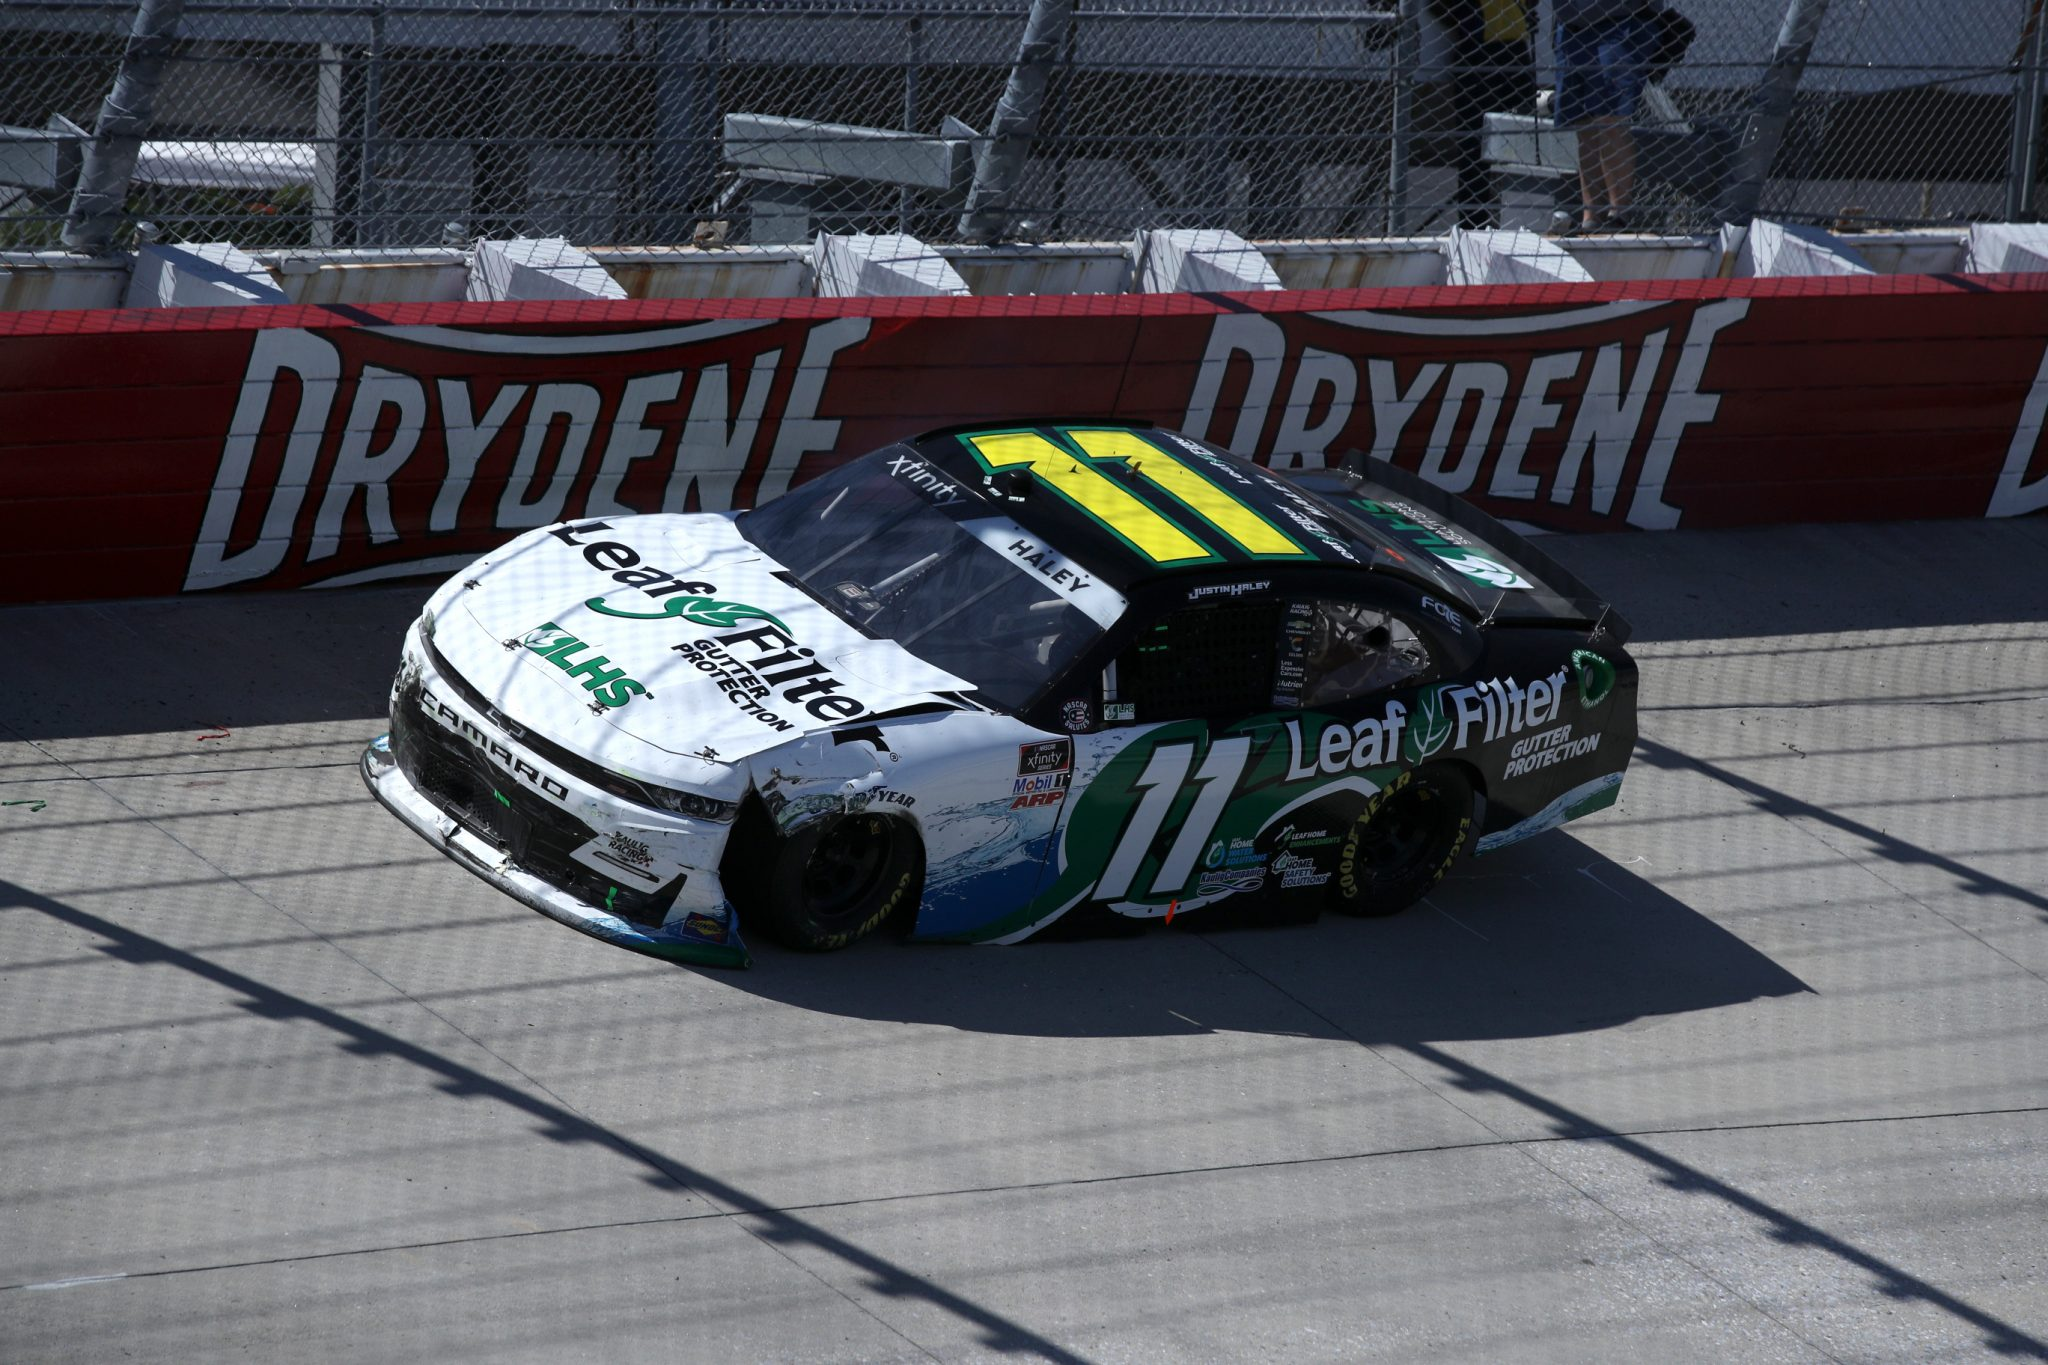 DOVER, DELAWARE - MAY 15: Zane Smith, driver of the #11 LeafFilter Gutter Protection Chevrolet, after crashing during the NASCAR Xfinity Series Drydene 200 race at Dover International Speedway on May 15, 2021 in Dover, Delaware. (Photo by Sean Gardner/Getty Images) | Getty Images